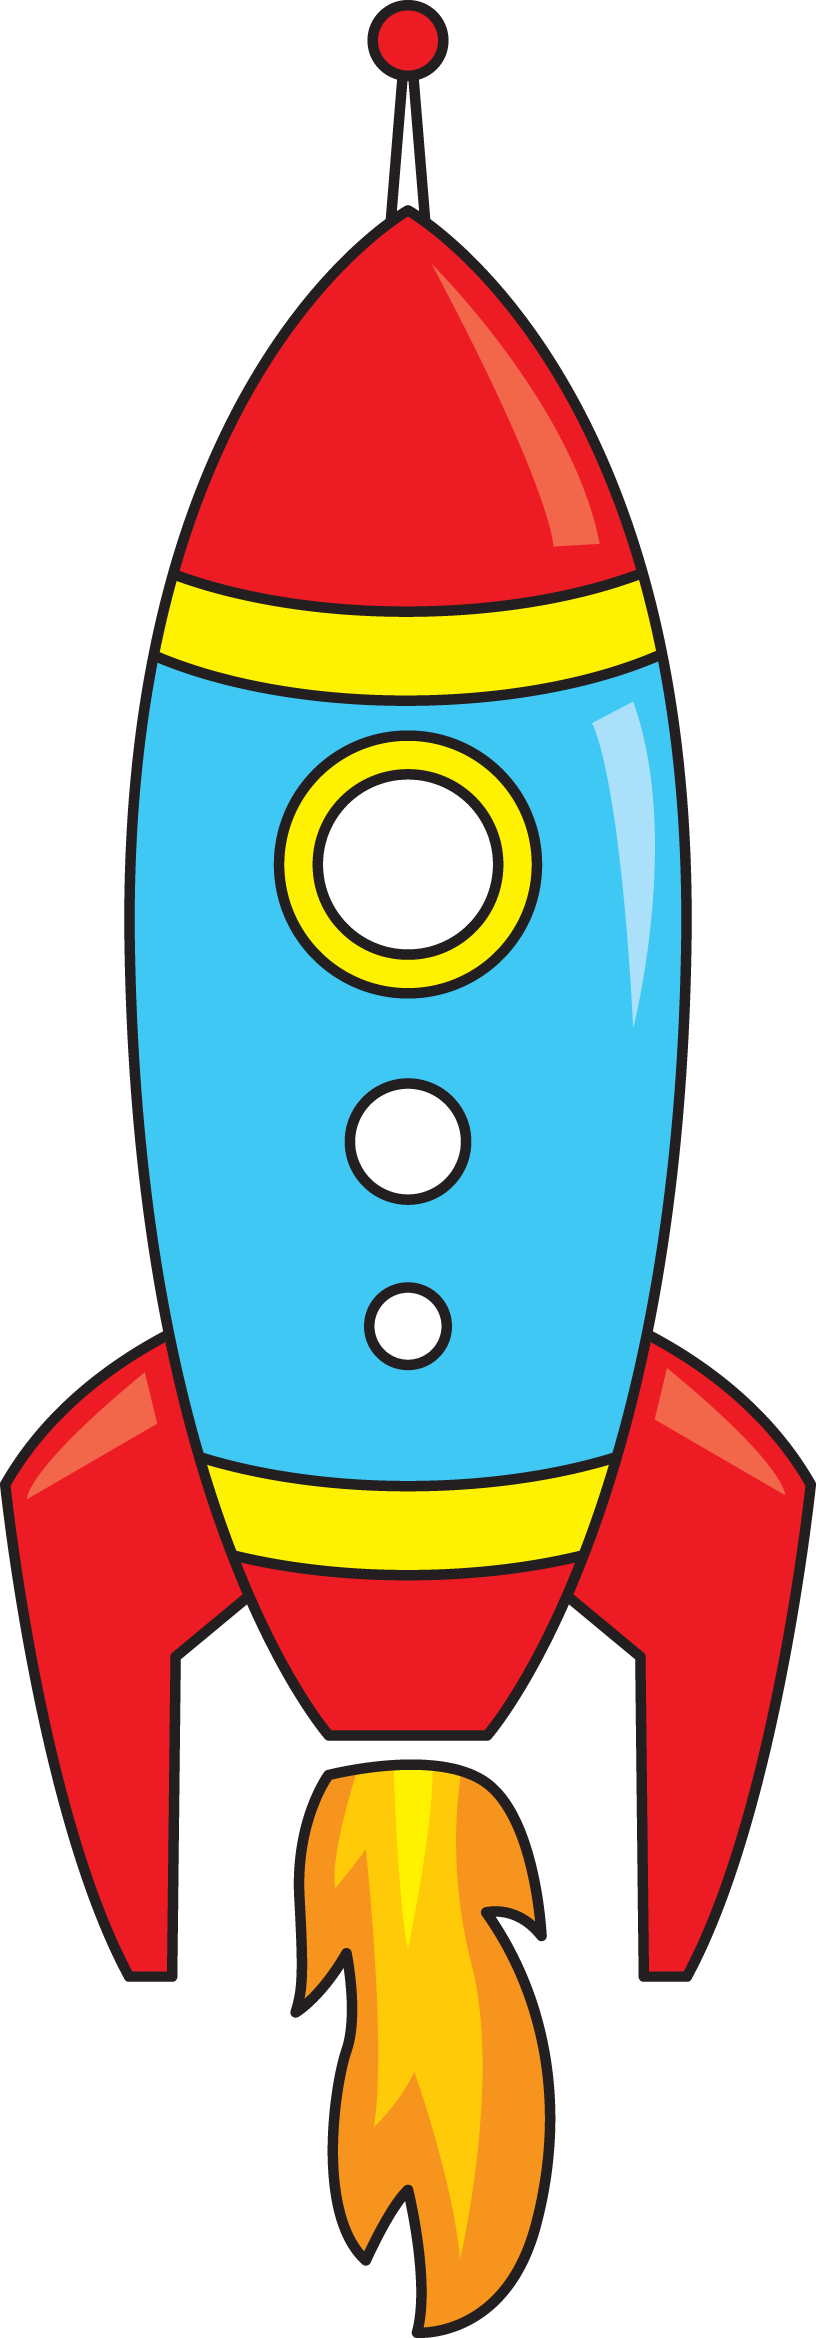 Images For Clipart Rocket